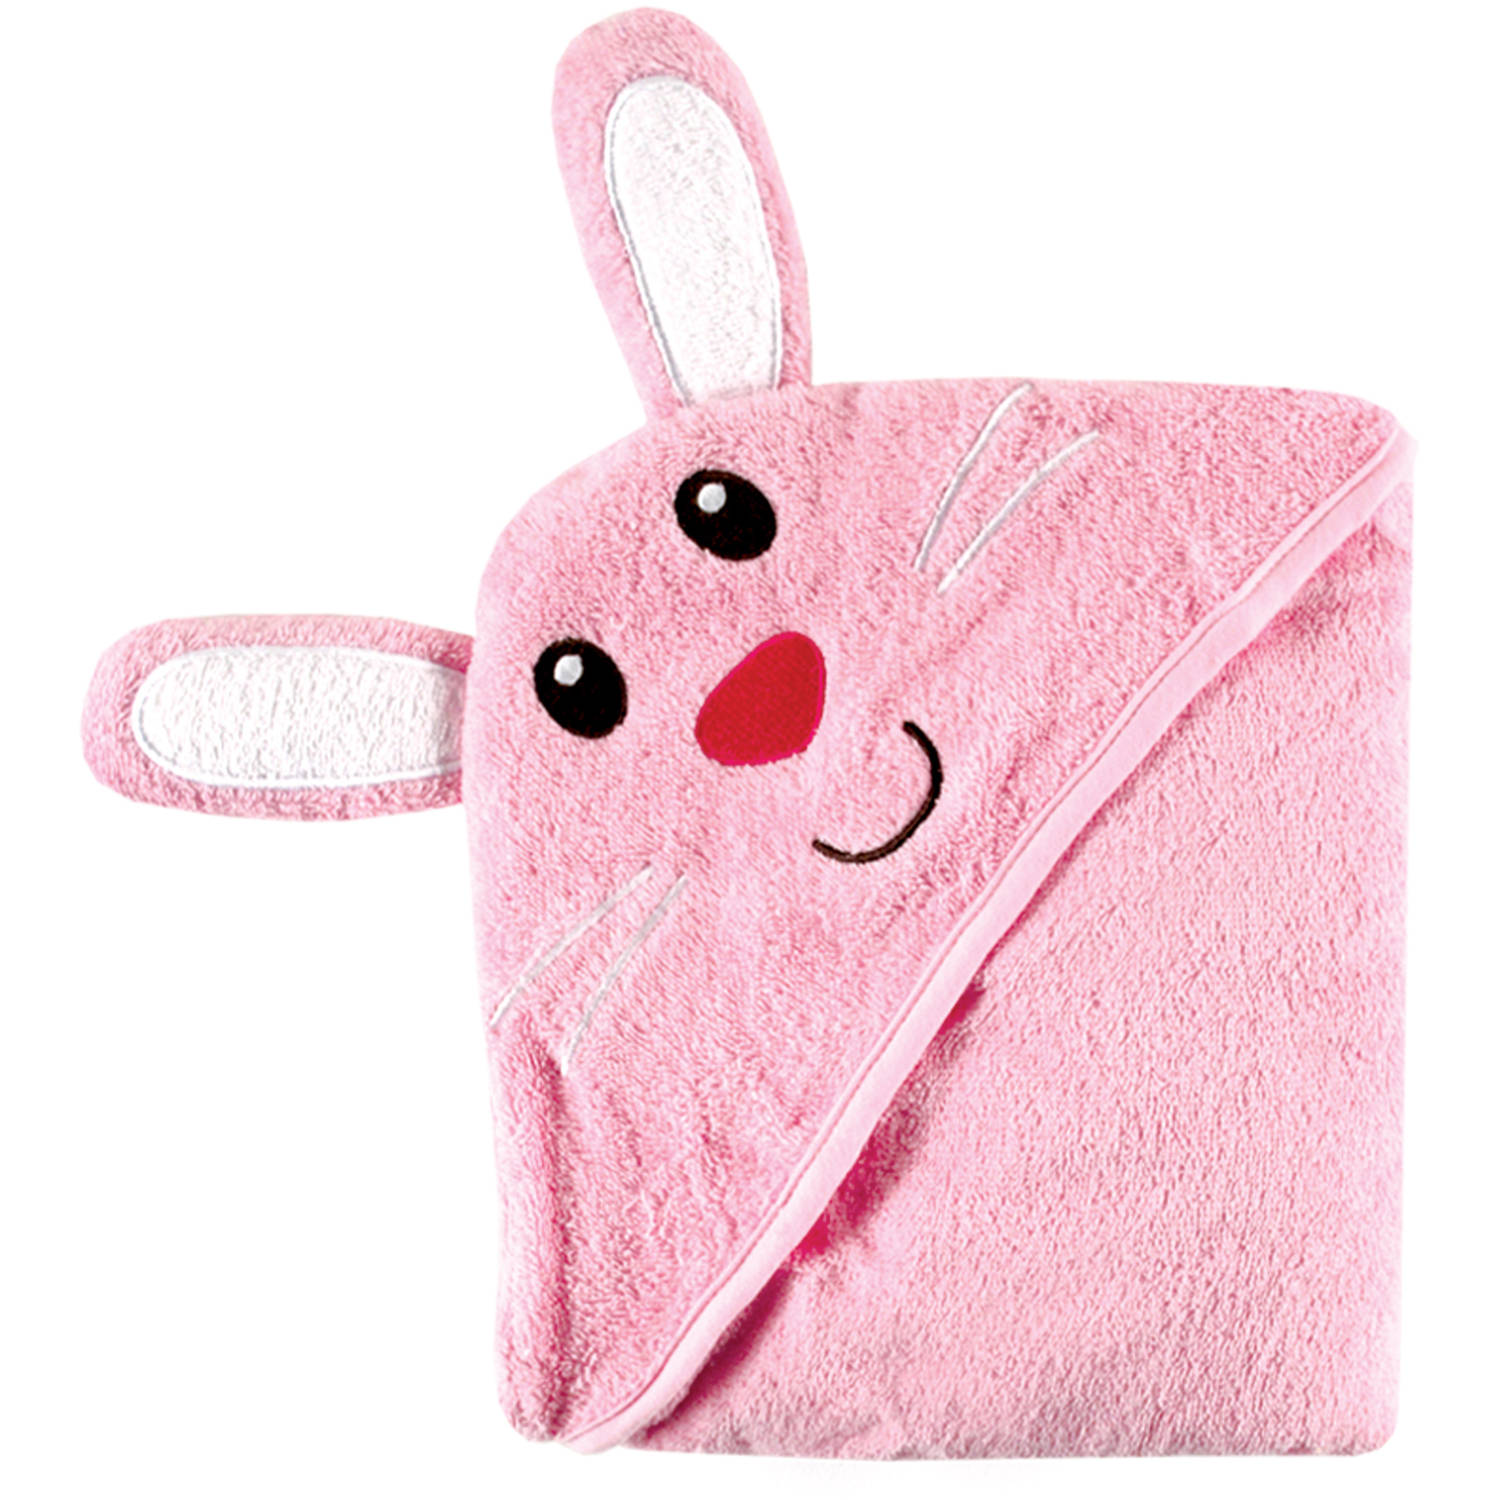 Luvable Friends Newborn Baby 100% Cotton Terry Hooded Towel with Embroidery, Choose Your Animal